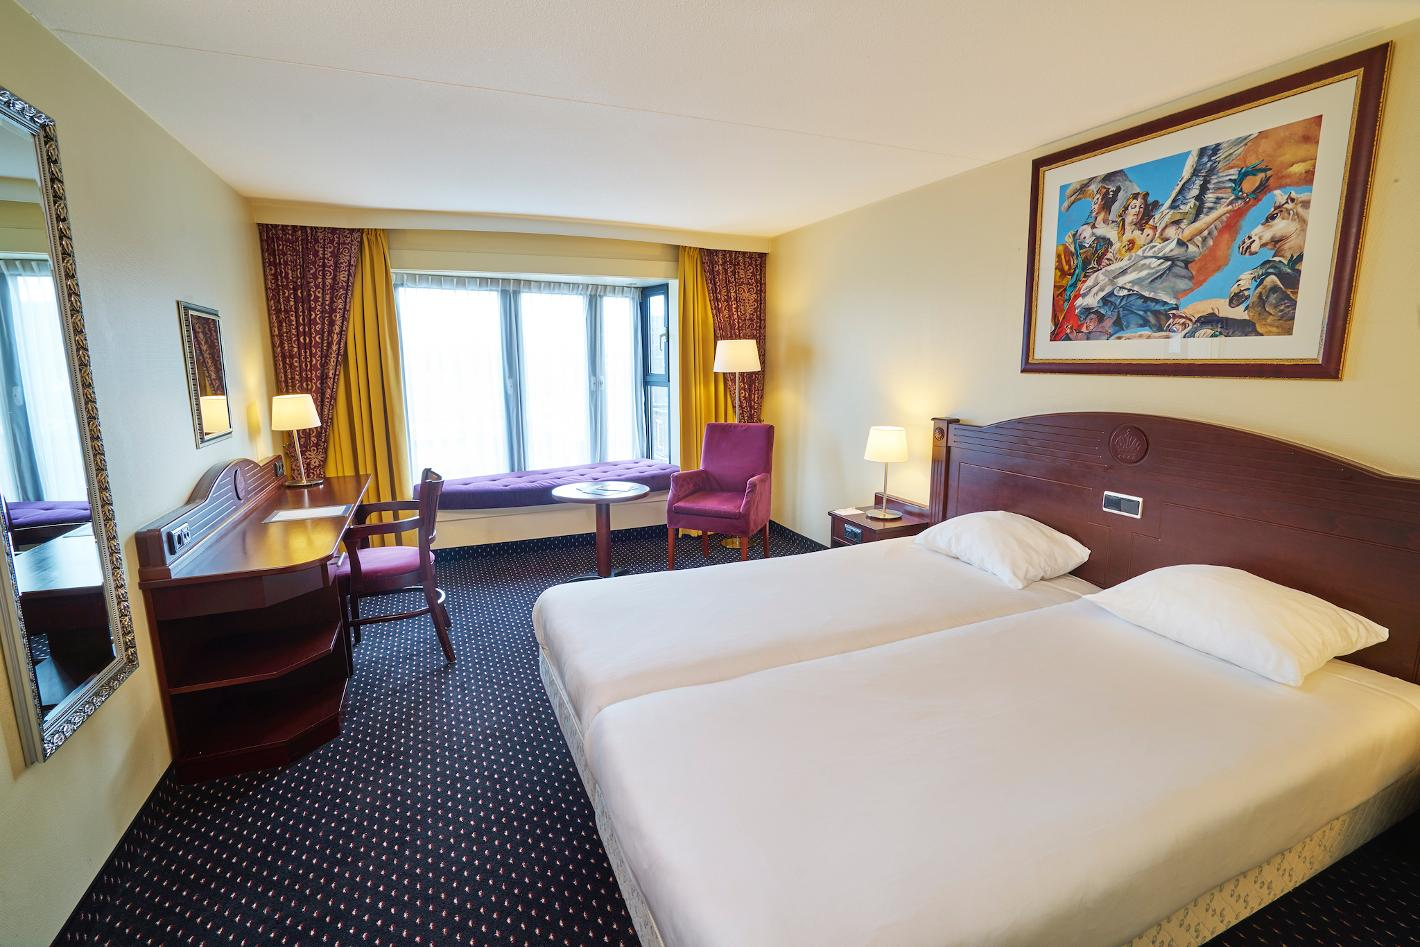 Photo Amrâth Grand Hotel de l'Empereur in Maastricht, Sleep, Hotels & accommodations - #5